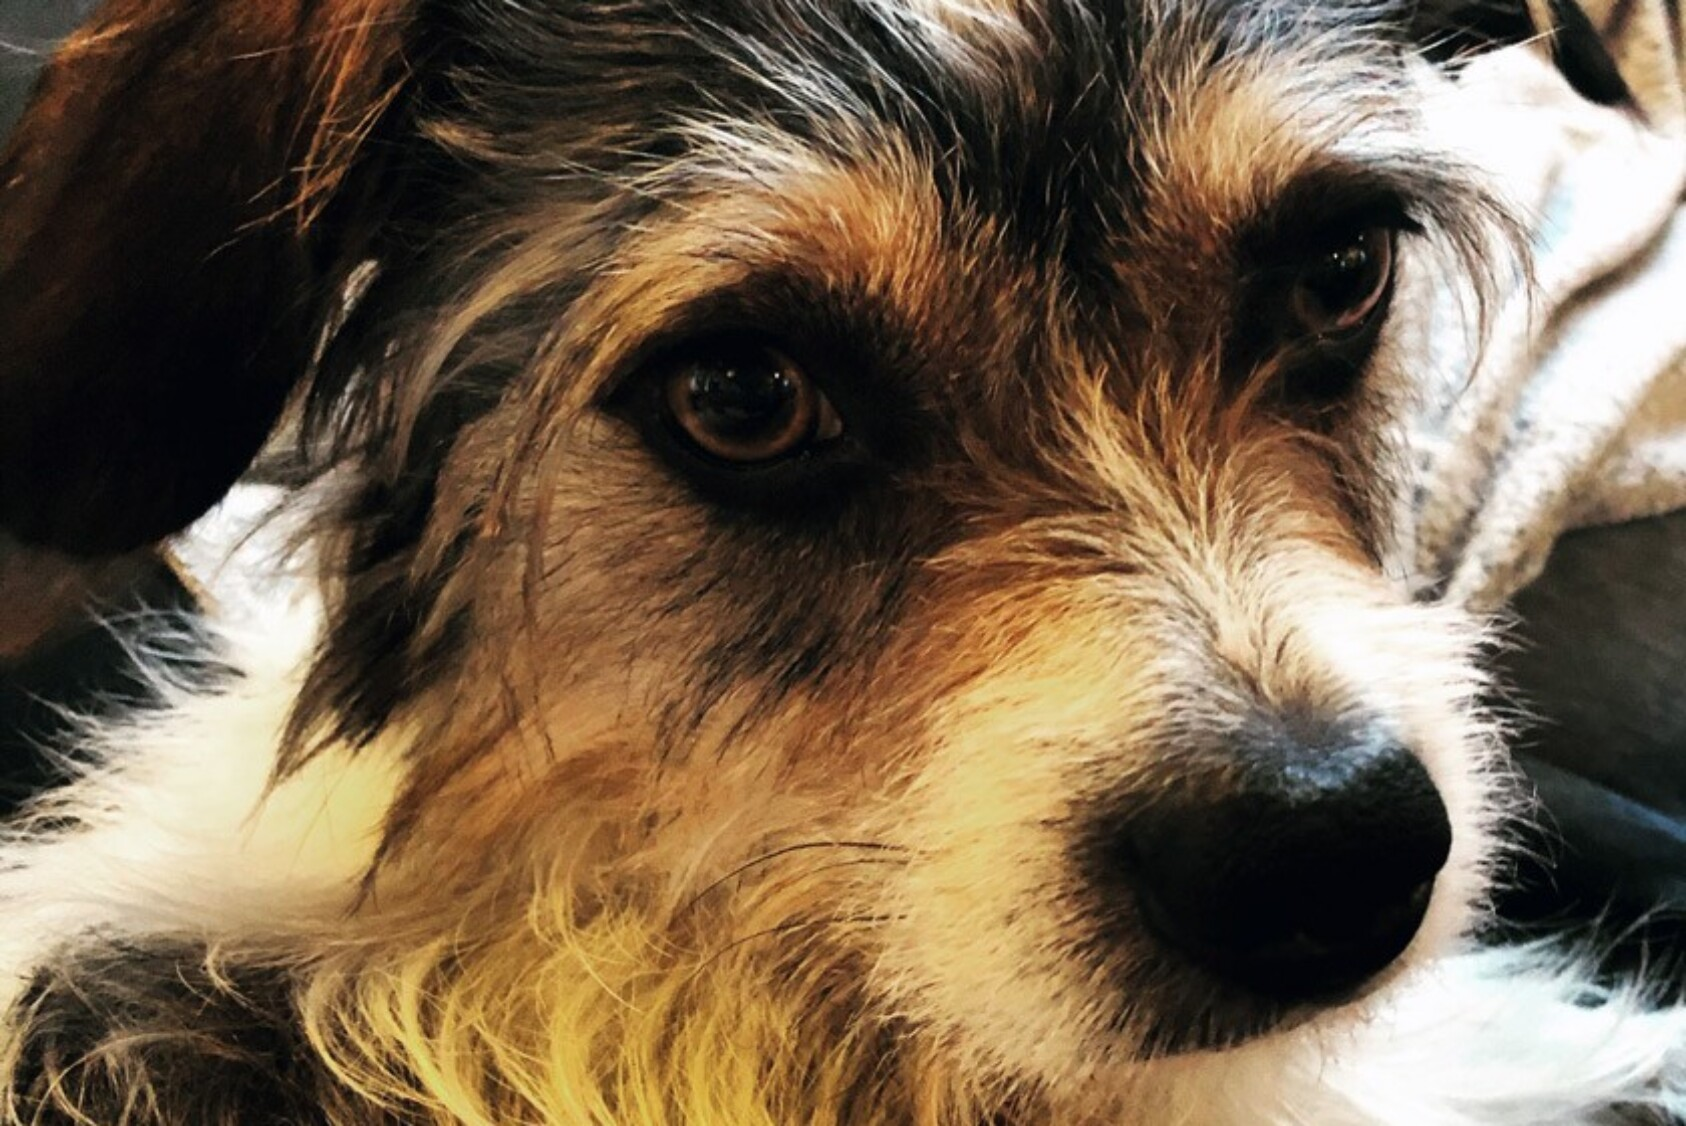 """""""Meet Archie! He came to us from Arkansas through a wonderful rescue organization. We adopted him right after Christmas. He is a 2.5-year-old terrier mix and has settled in nicely to our family. Our favorite thing about Archie is how he loves to give kisses and snuggle!"""" —Lynn (Vitiello) Monaghan '02, Framingham, MA"""